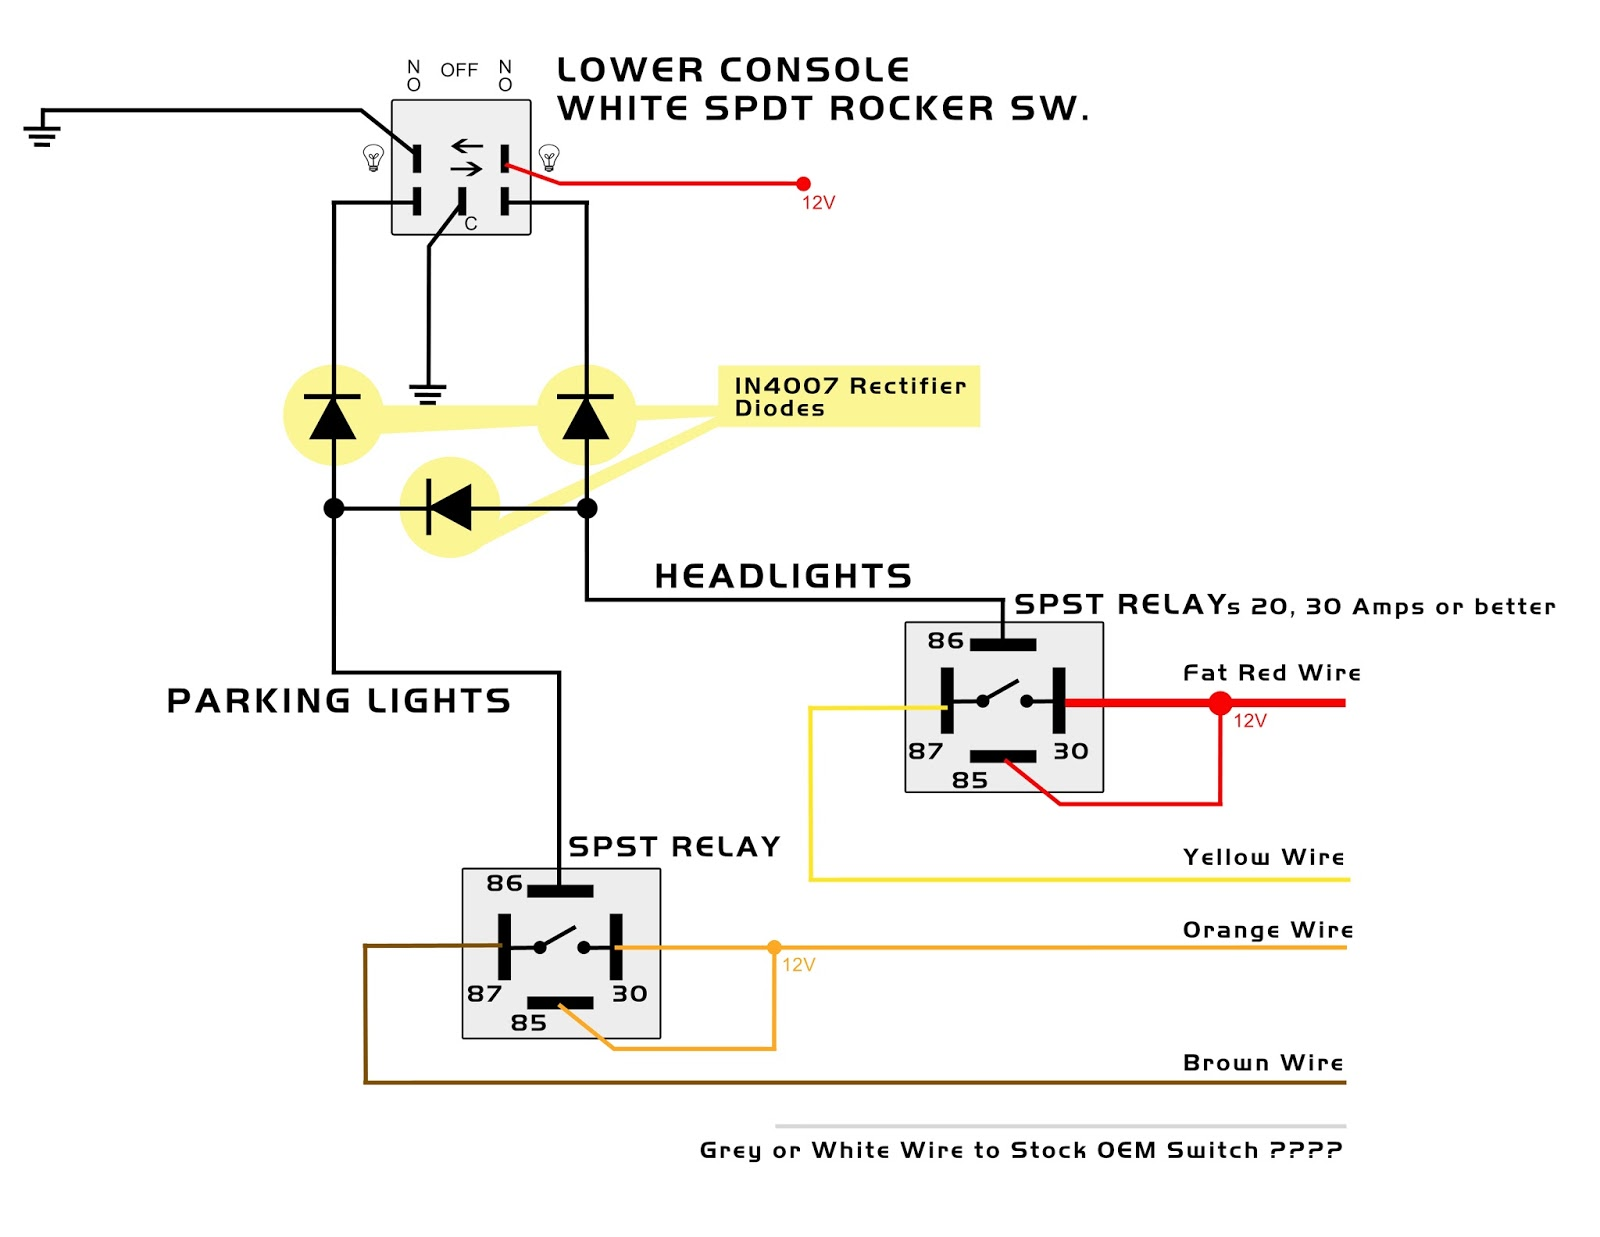 2000 F250 Headlight Switch Wiring Diagram from 3.bp.blogspot.com